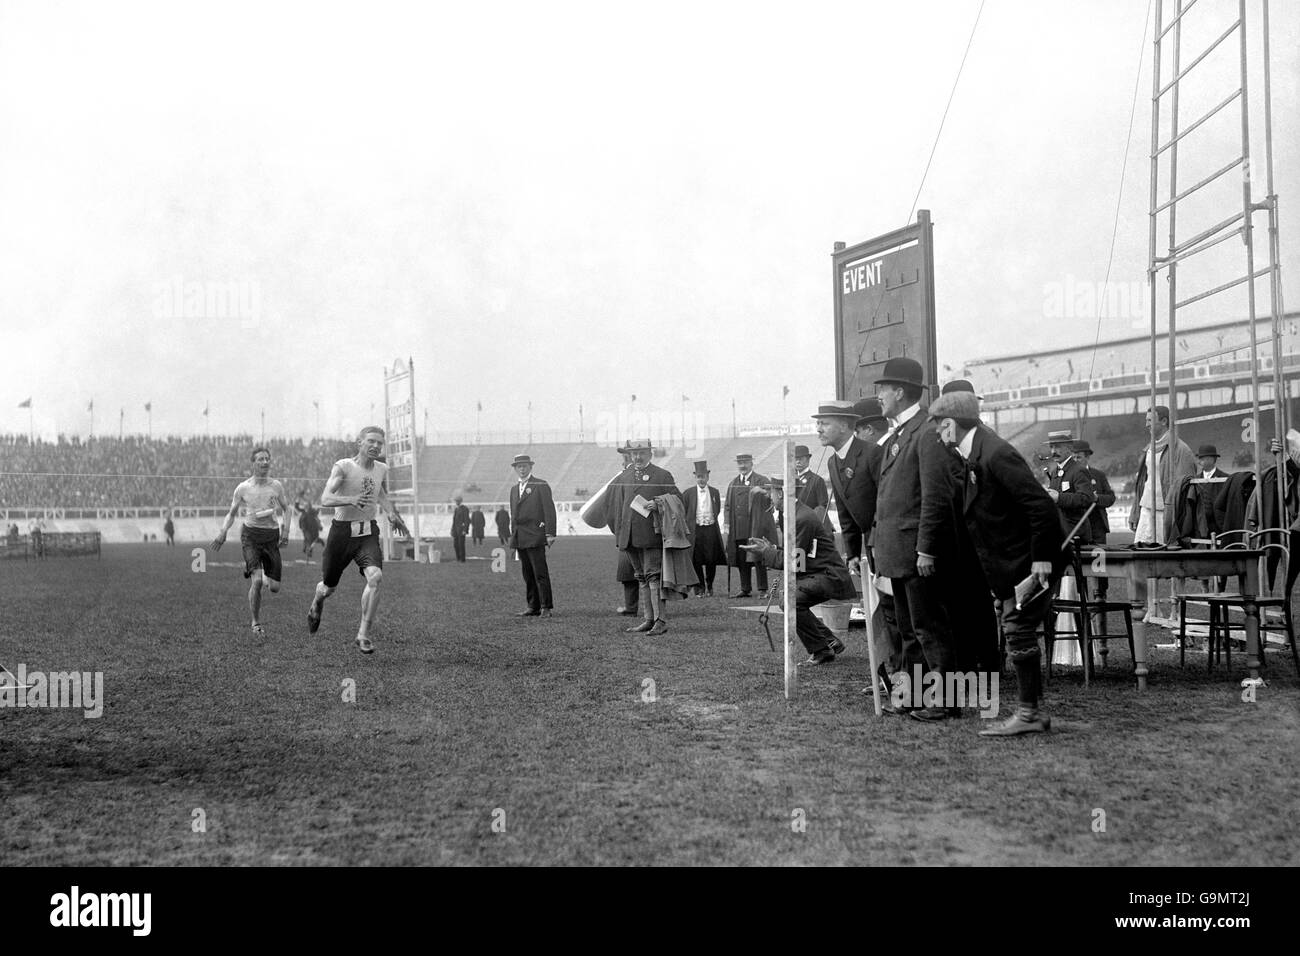 Athletics - London Olympic Games 1908 - 3200m Steeplechase - Final - White City - Stock Image